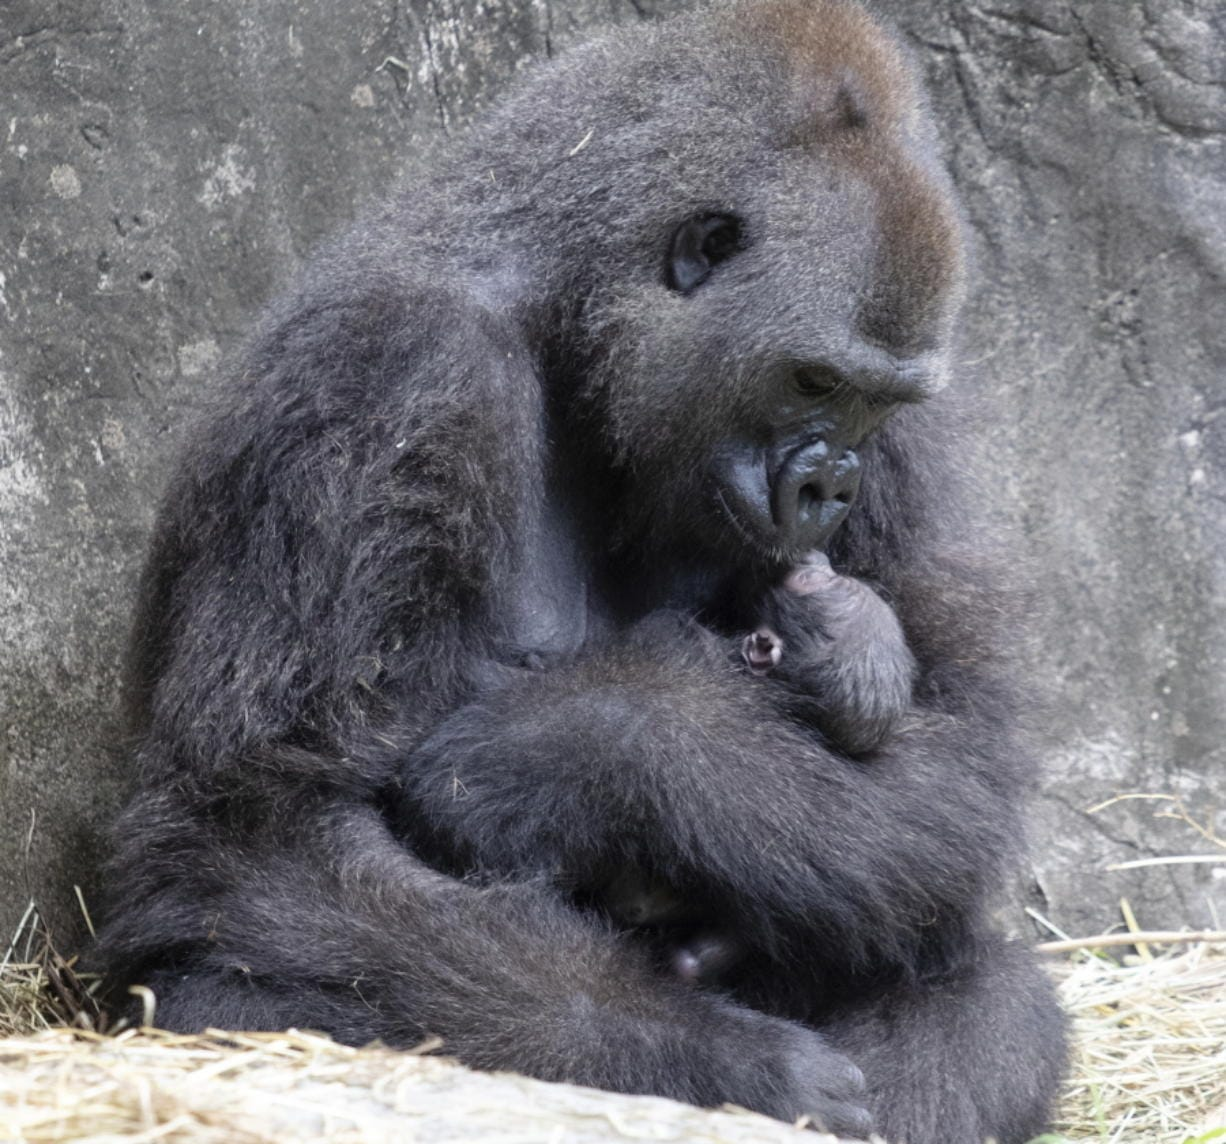 FILE - In this photo provided by the Audubon Nature Institute, Tumani, a critically endangered western lowland gorilla holds her newborn at an enclosure at the Audubon Zoo, following its birth on Friday, Sept. 4, 2020, in New Orleans. Less than a week after celebrating the birth of the infant gorilla, the zoo in New Orleans is mourning its death. Audubon Zoo officials say the baby born Friday died on Wednesday, Sept. 9.